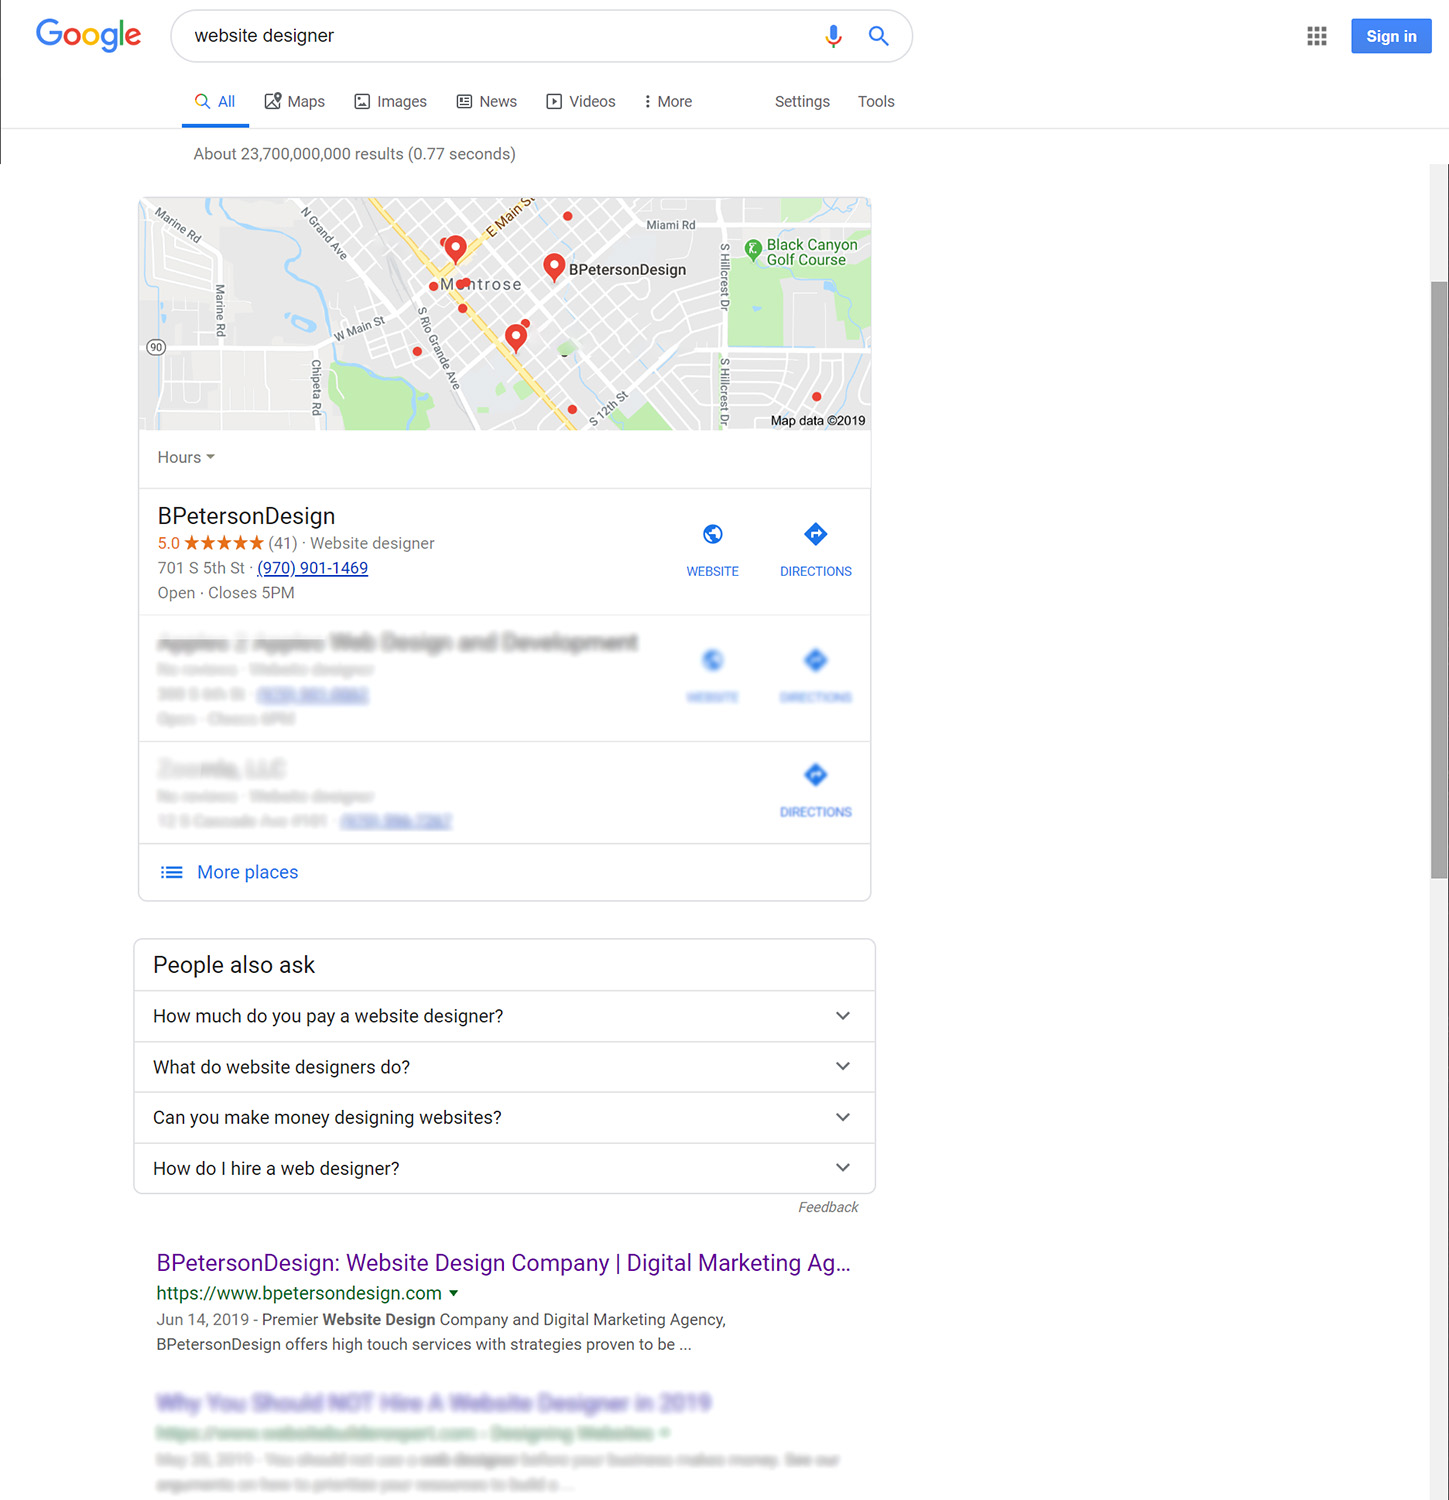 Google Search Results for Website Designer